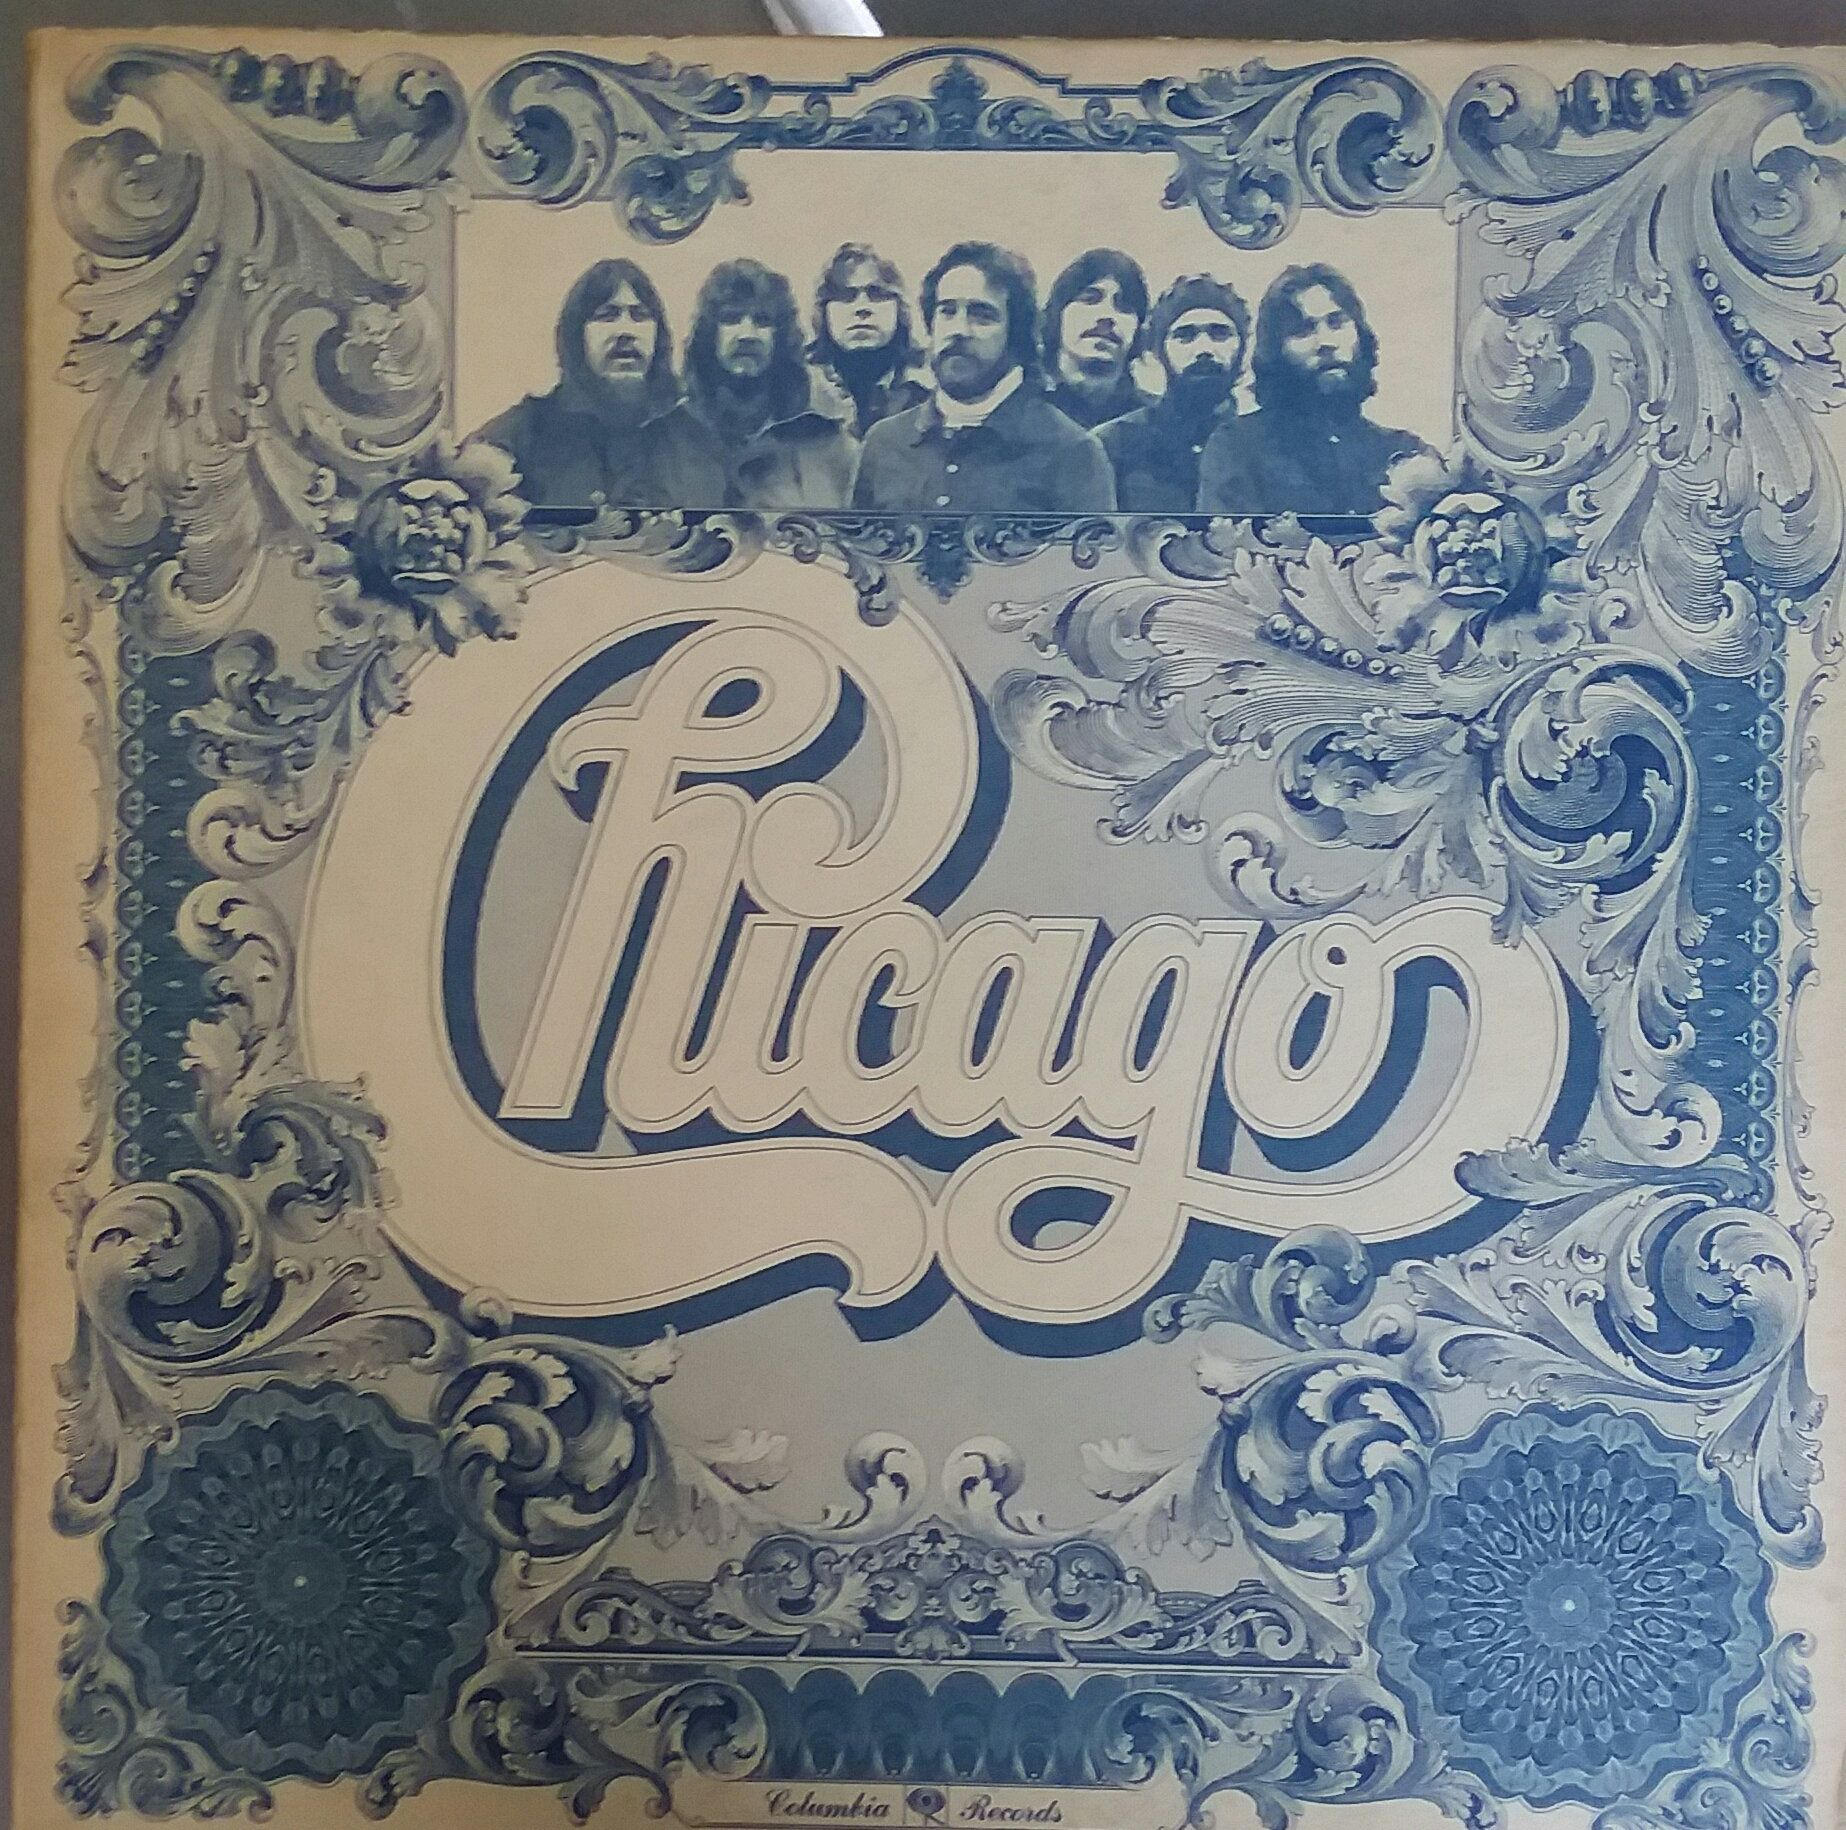 Chicago Vi Vintage Record Album Vinyl Lp Classic Rock And Roll Music American Rock Band Chica Classic Rock Albums Rock Album Covers Classic Rock And Roll